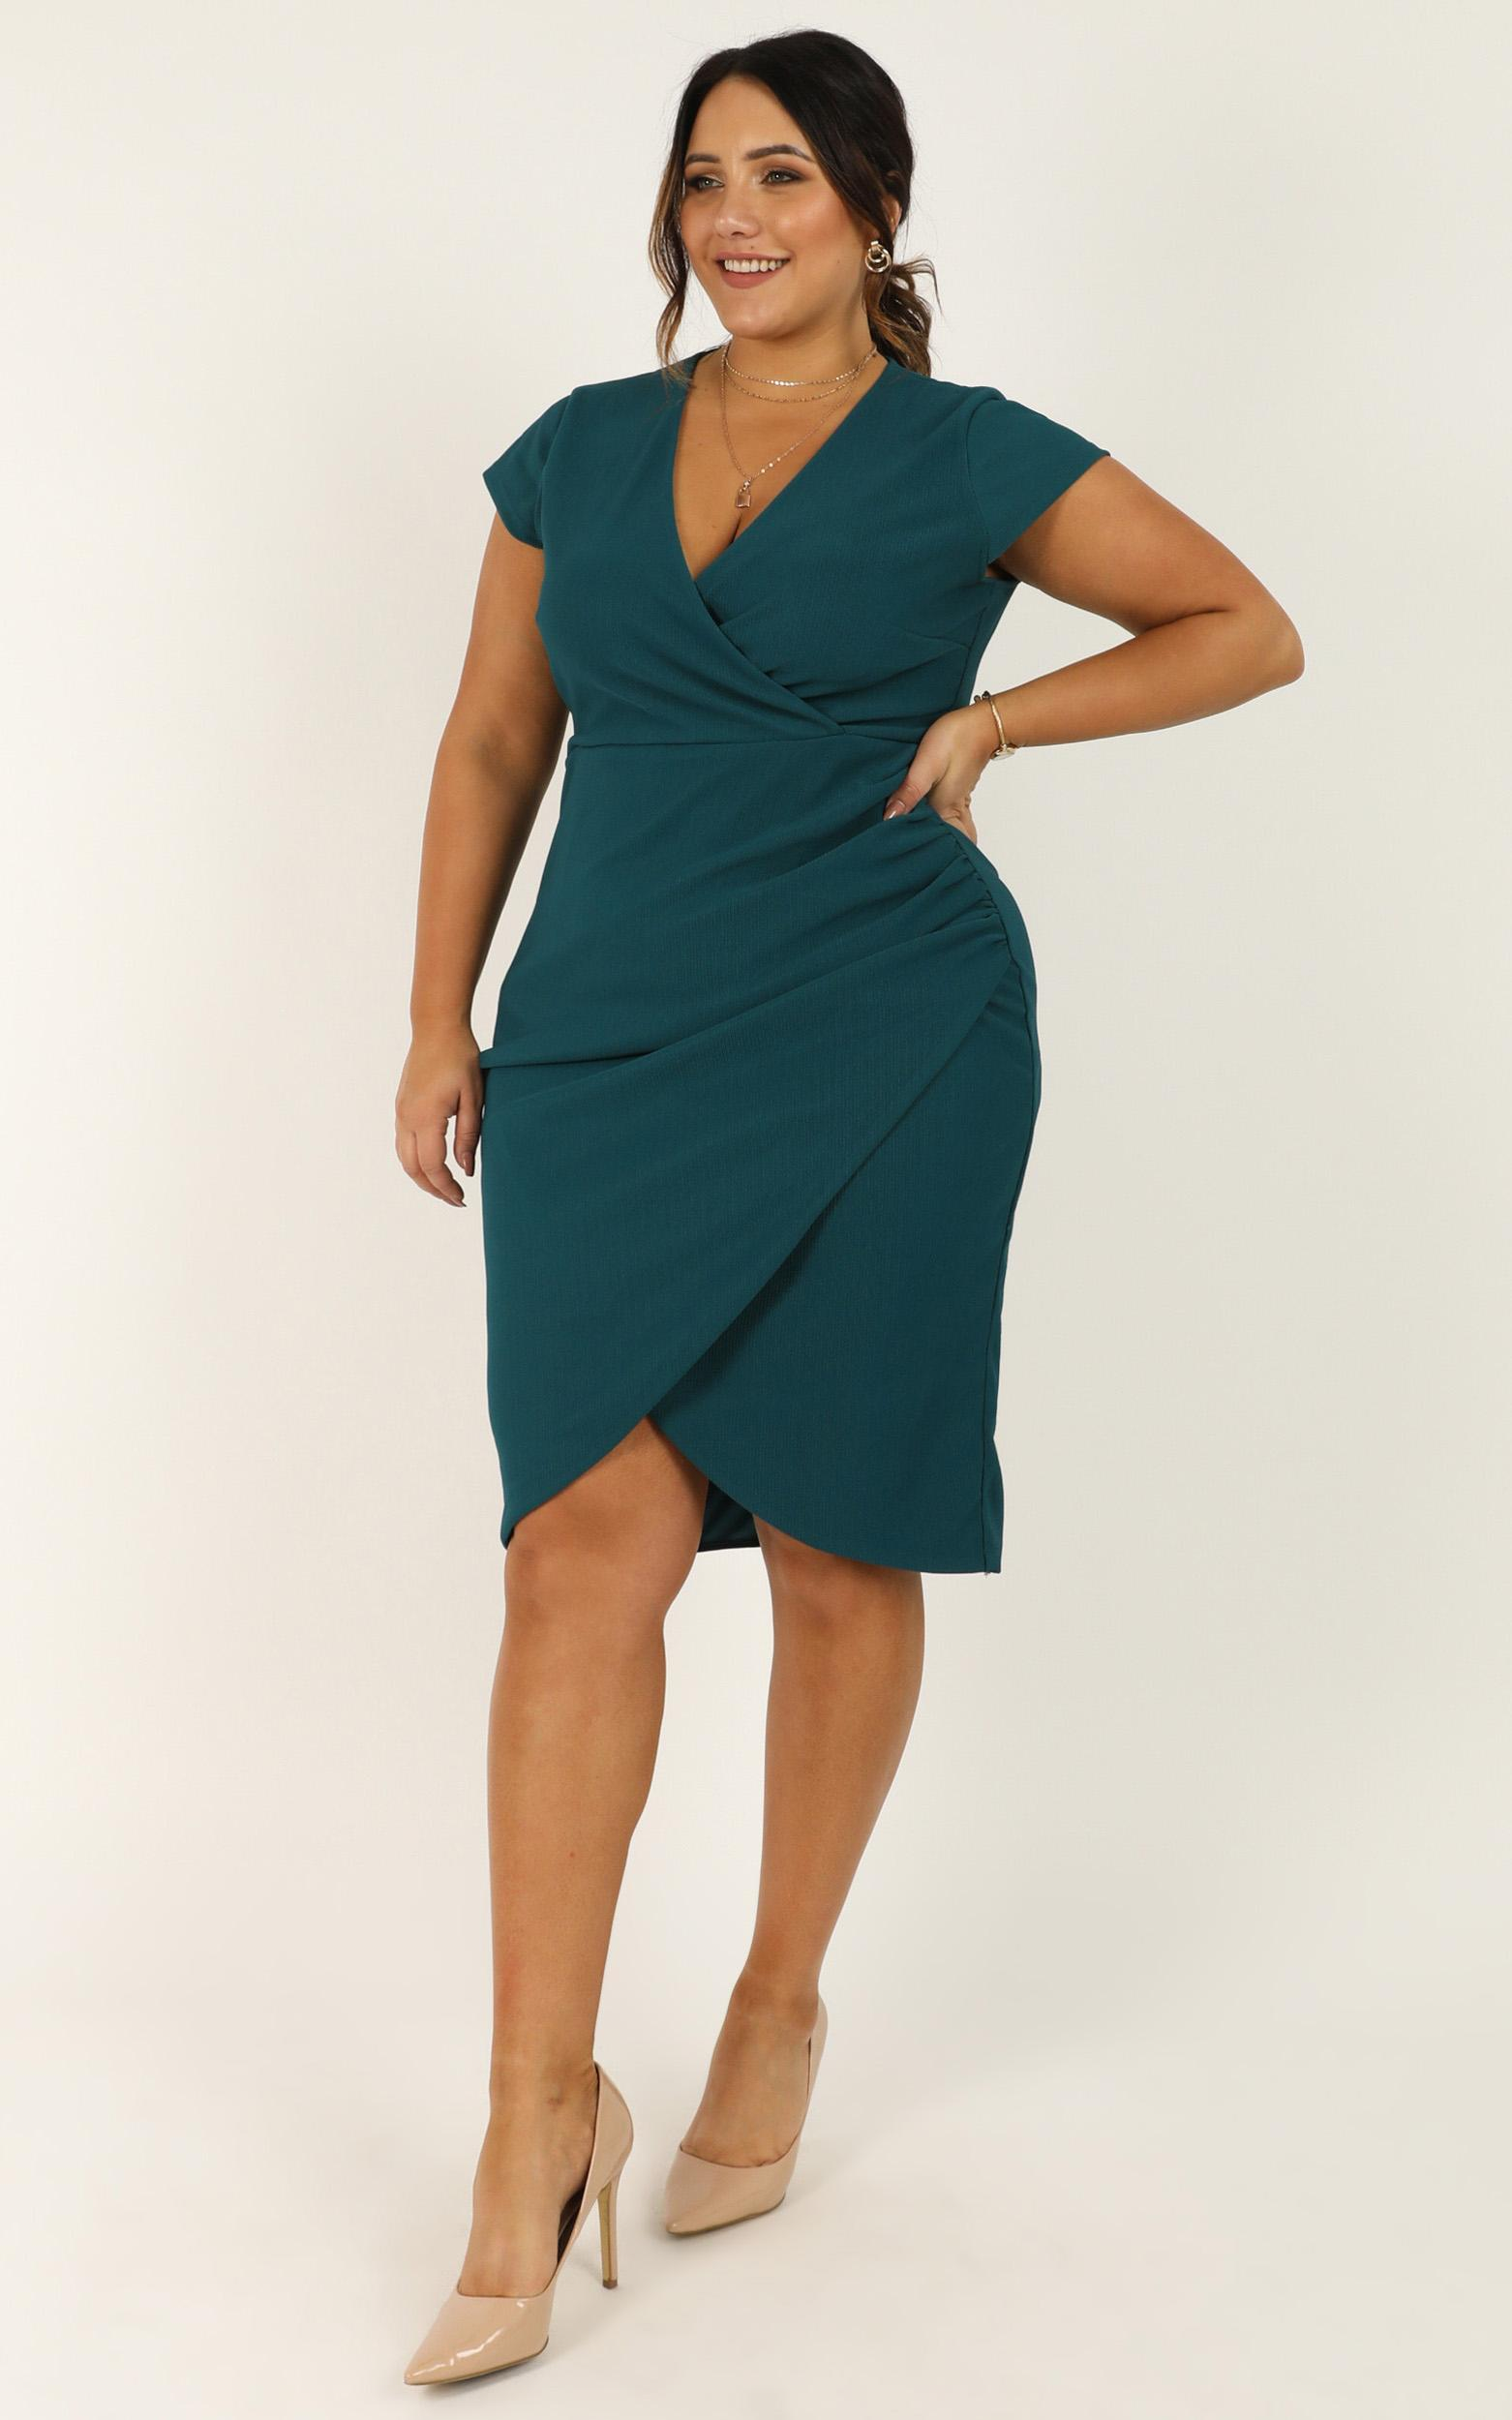 Quick Decider Dress in teal - 20 (XXXXL), Green, hi-res image number null